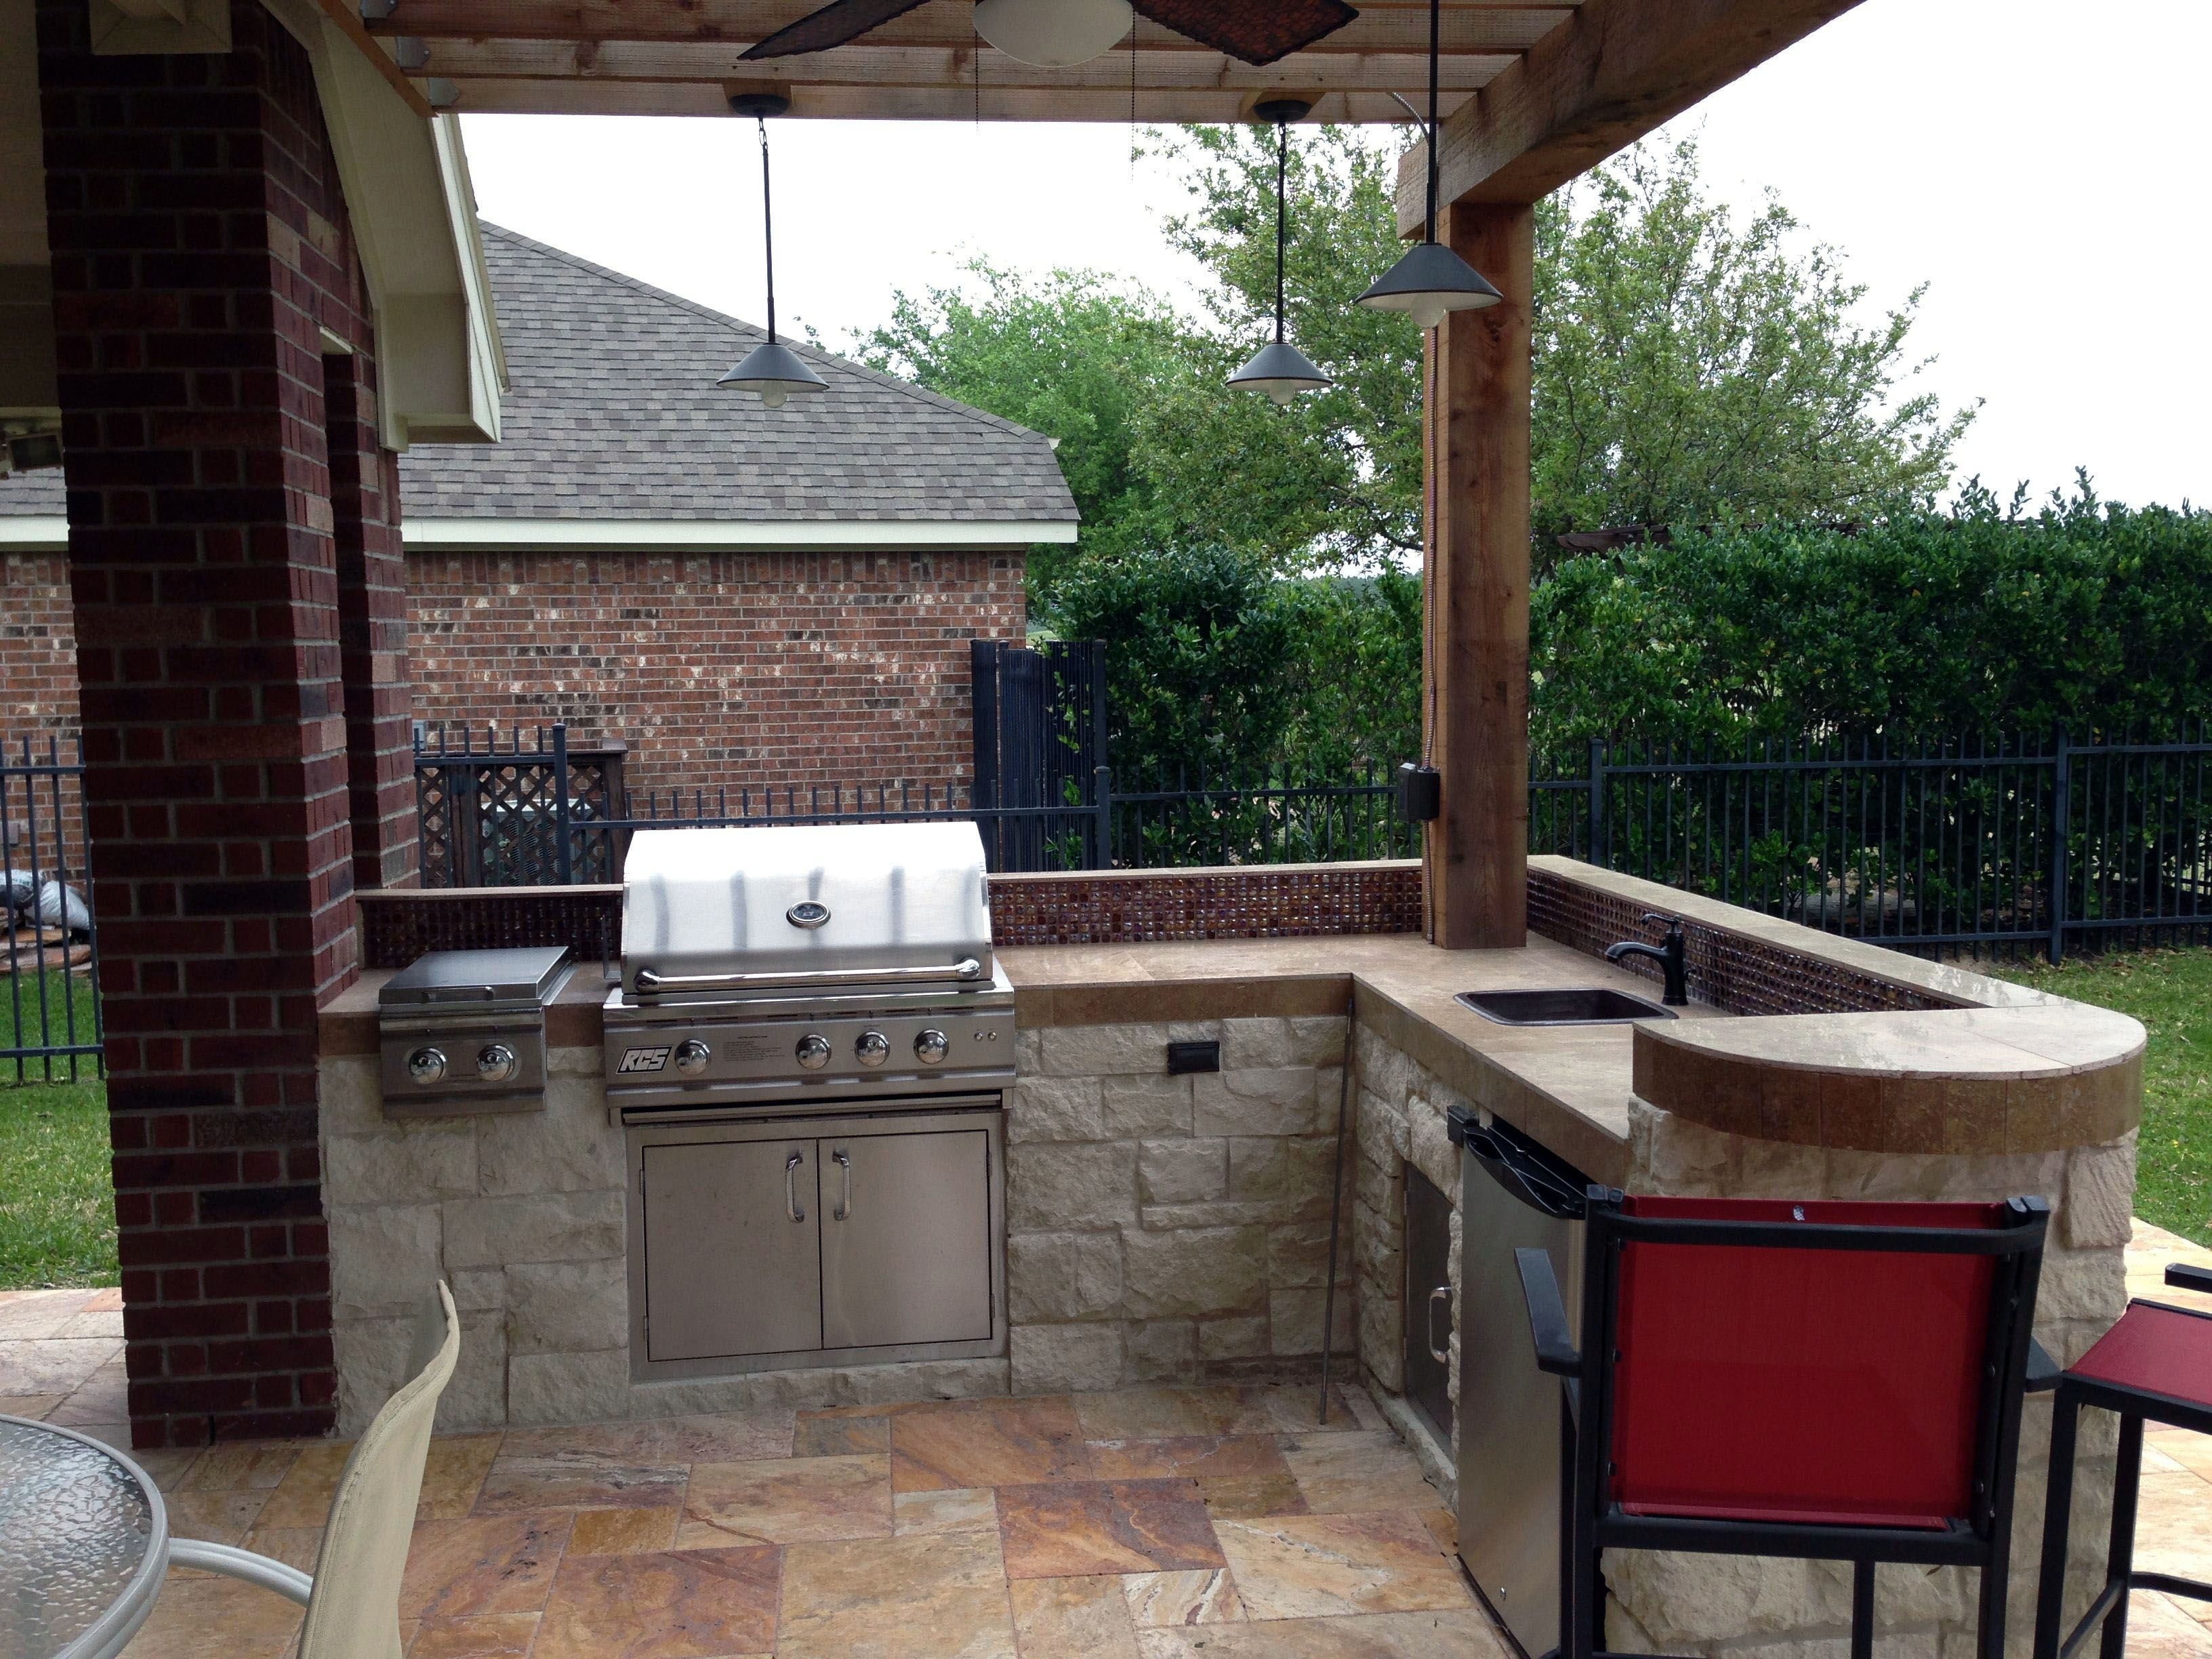 Gorgeous Concepts For Outdoor Kitchens Outdoor Kitchen Decor Outdoor Kitchen Countertops Outdoor Kitchen